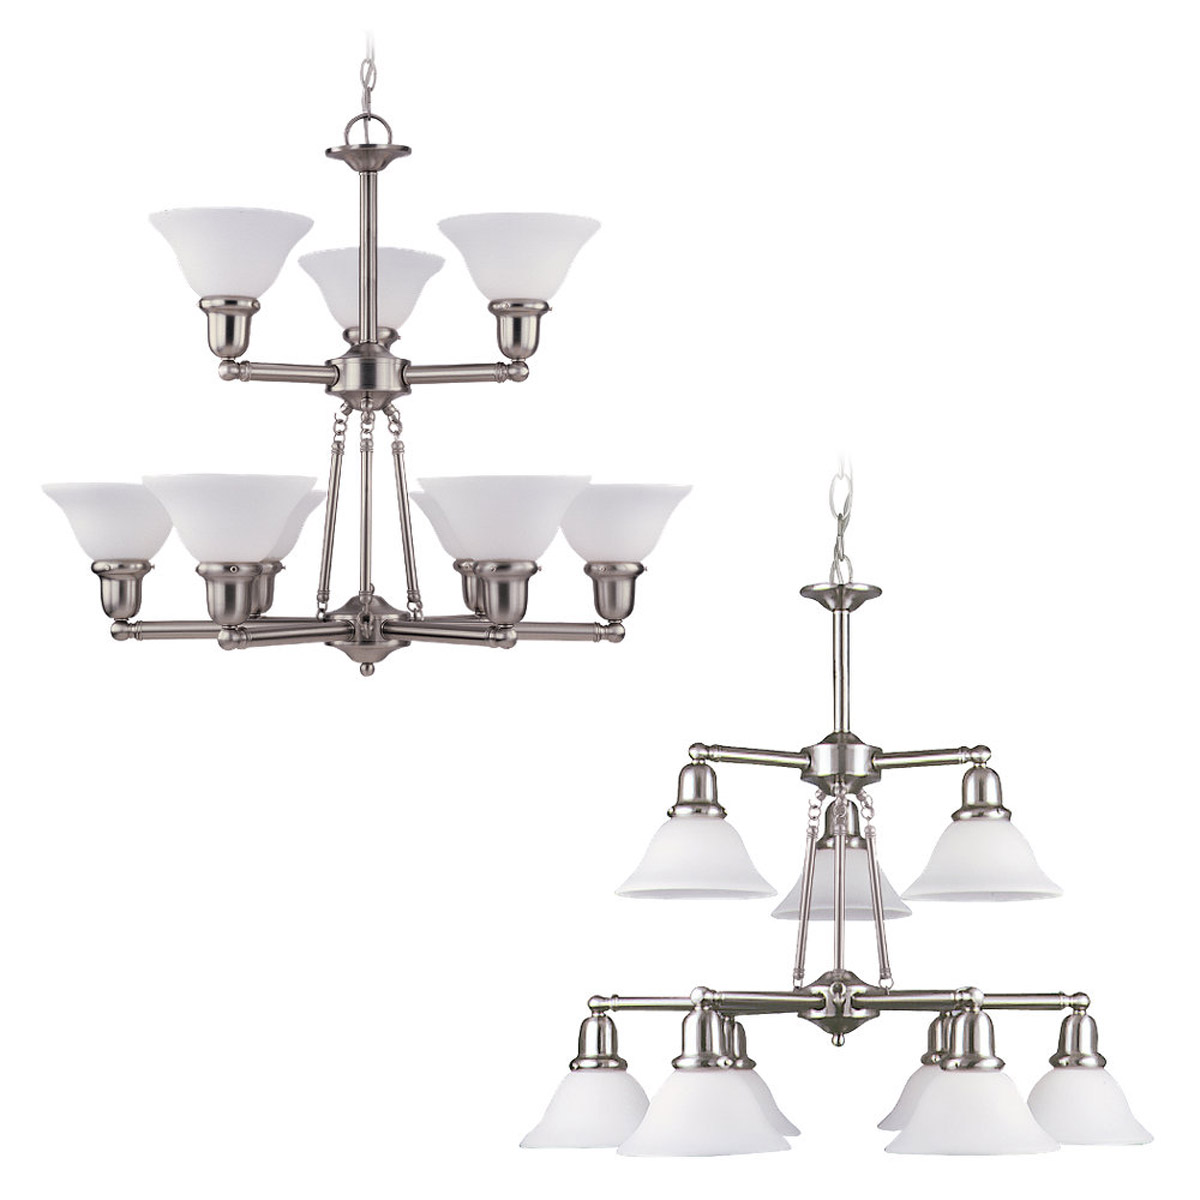 Sea Gull Lighting Sussex 9 Light Chandelier in Brushed Nickel 31062-962 photo